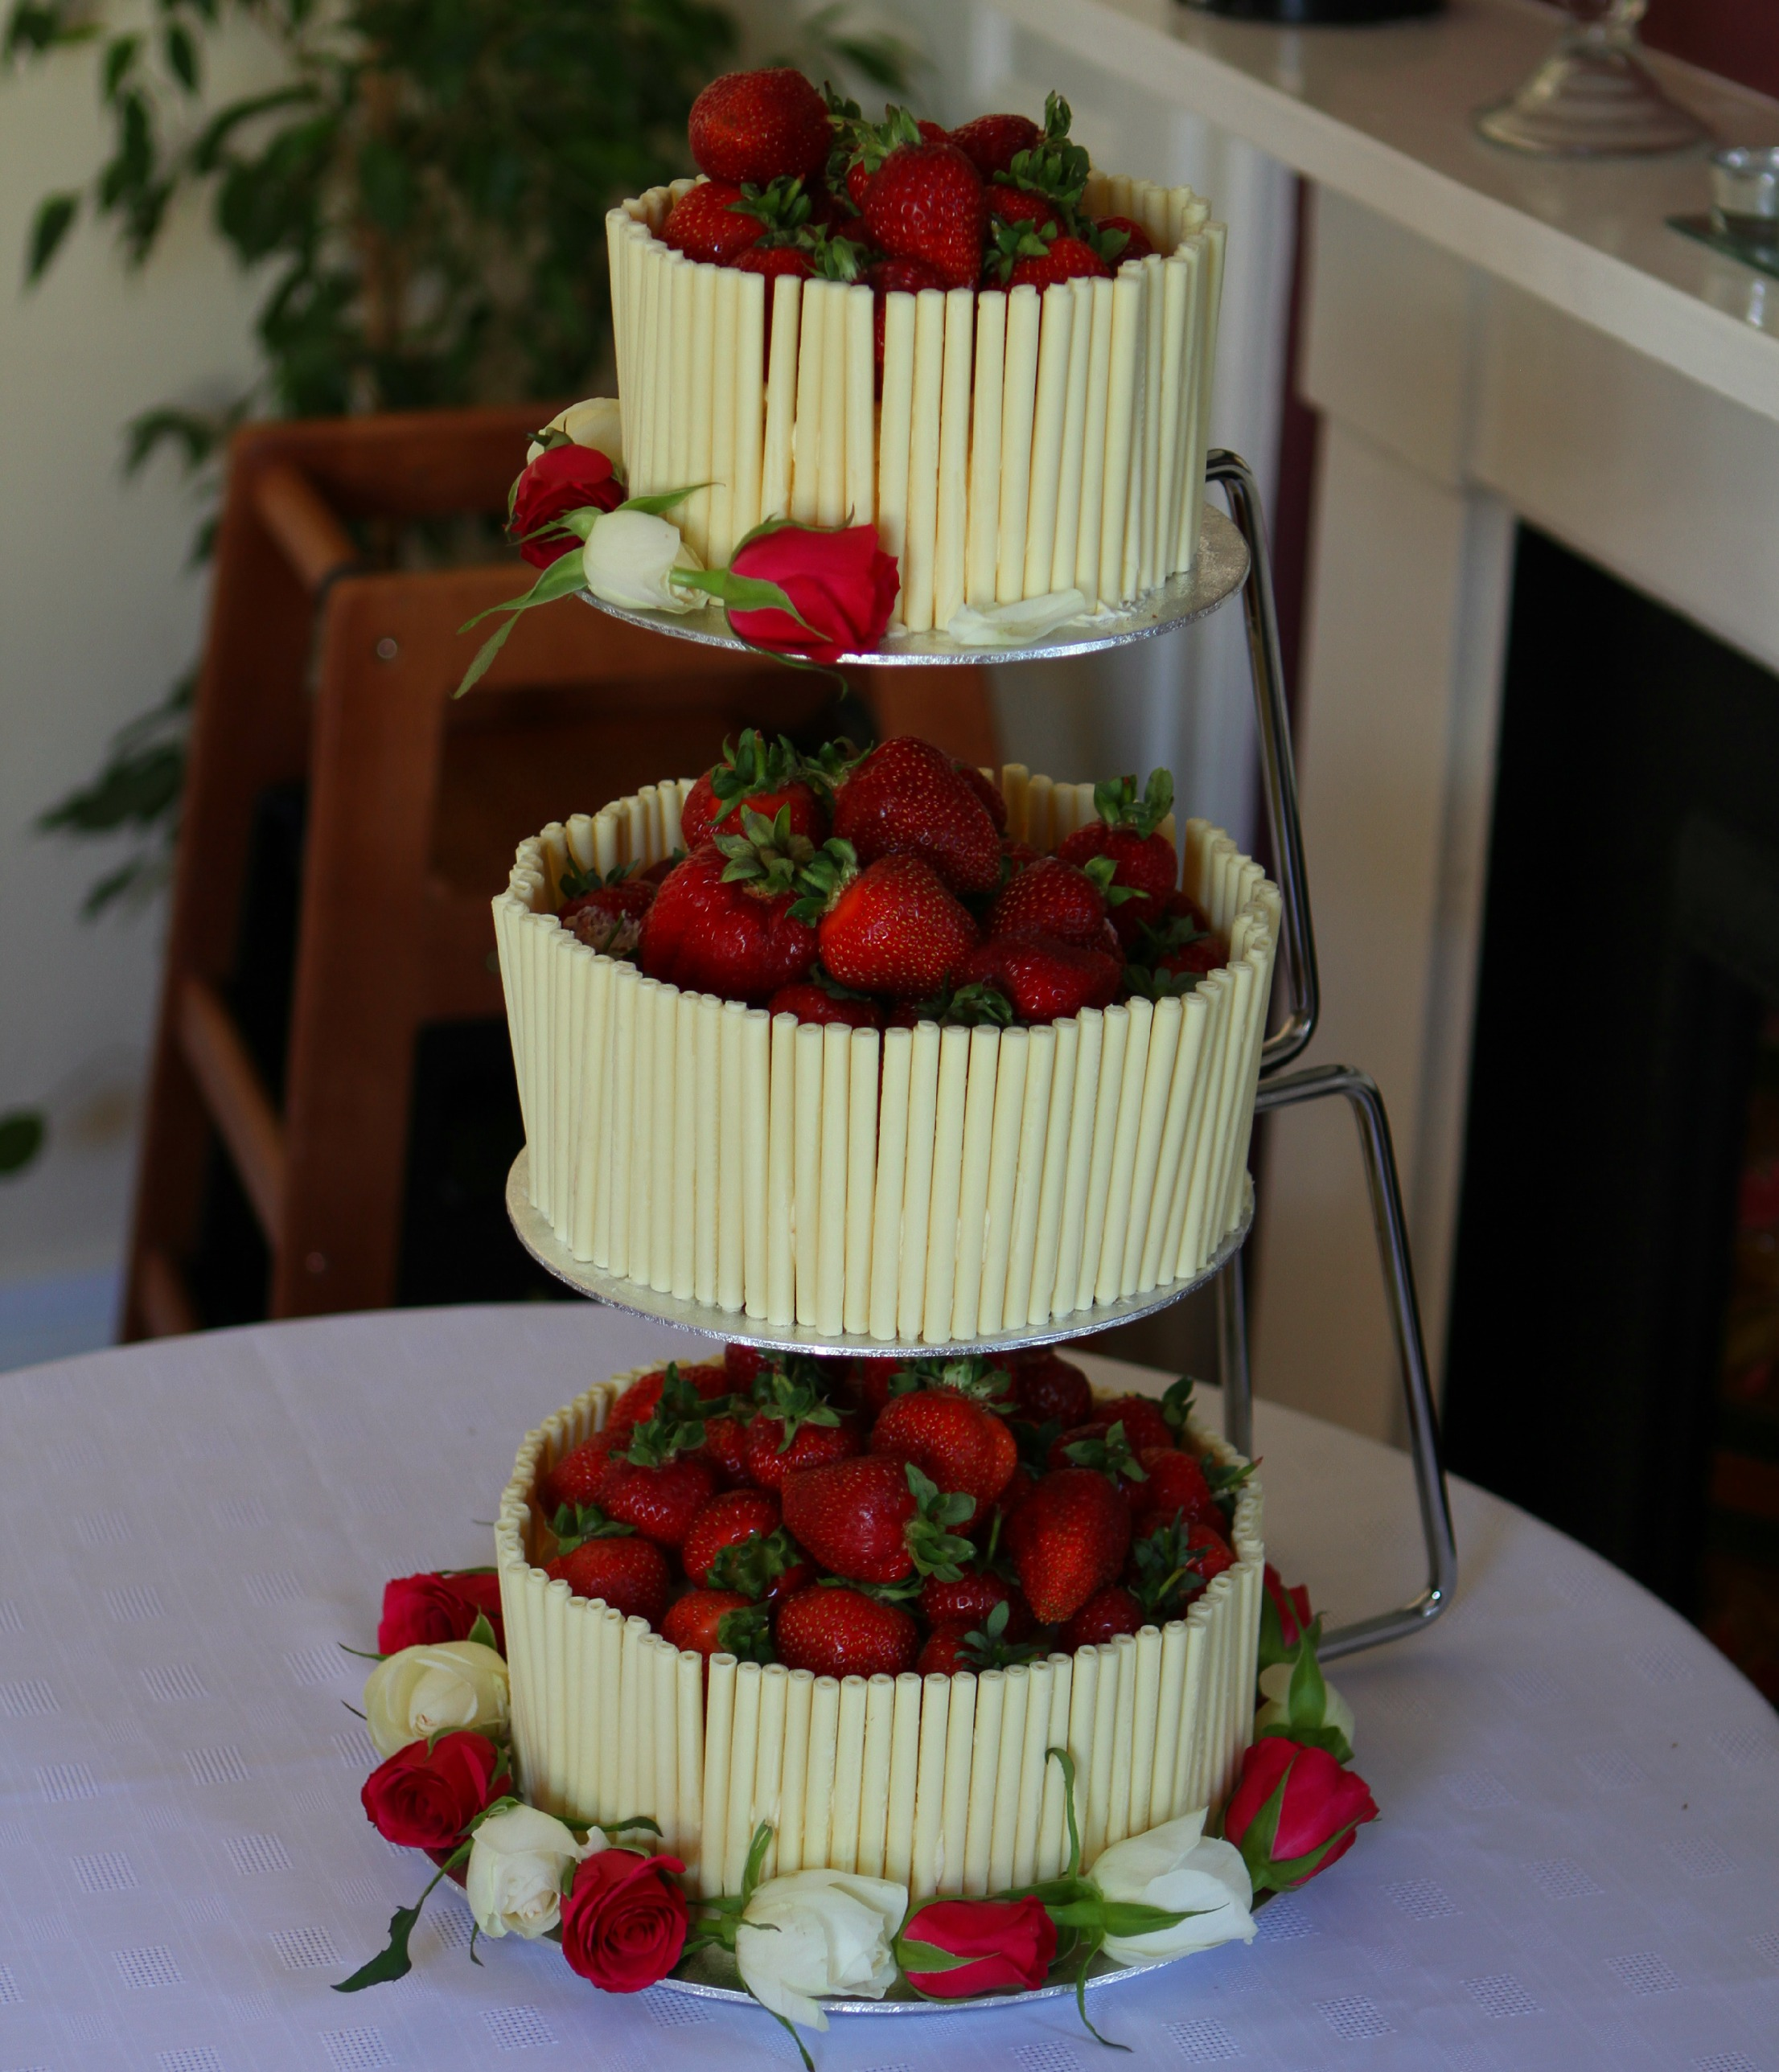 Strawberry and White Chocolate Wedding Cake with an